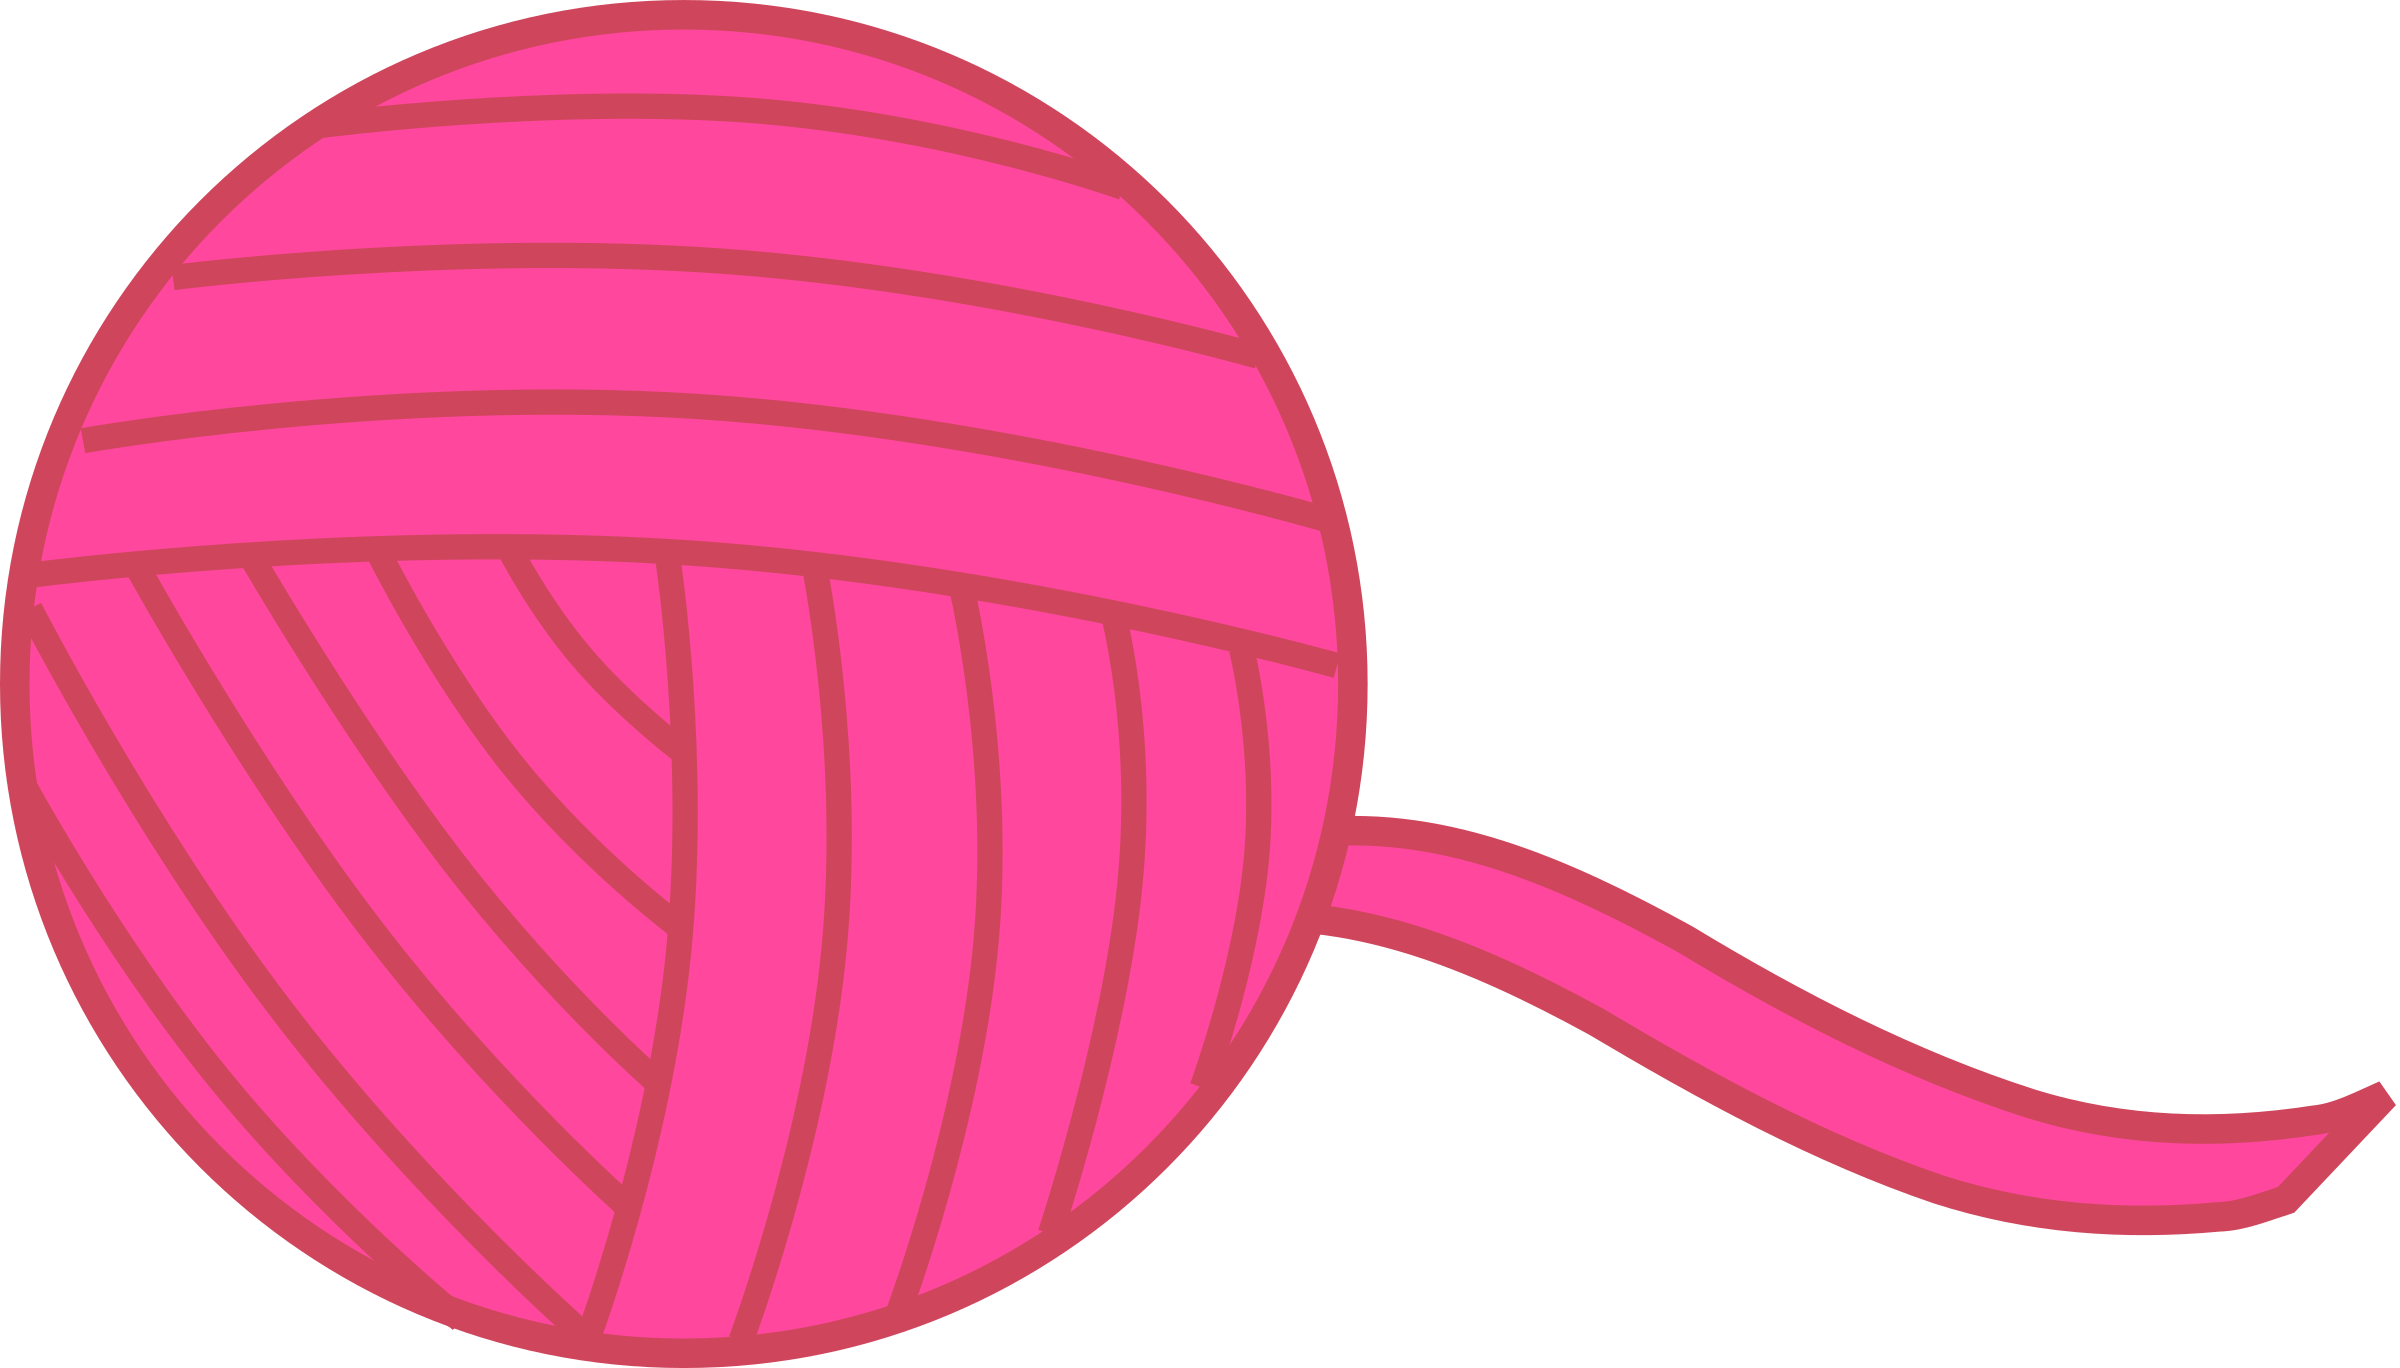 Pink Ball of Yarn by adam_lowe